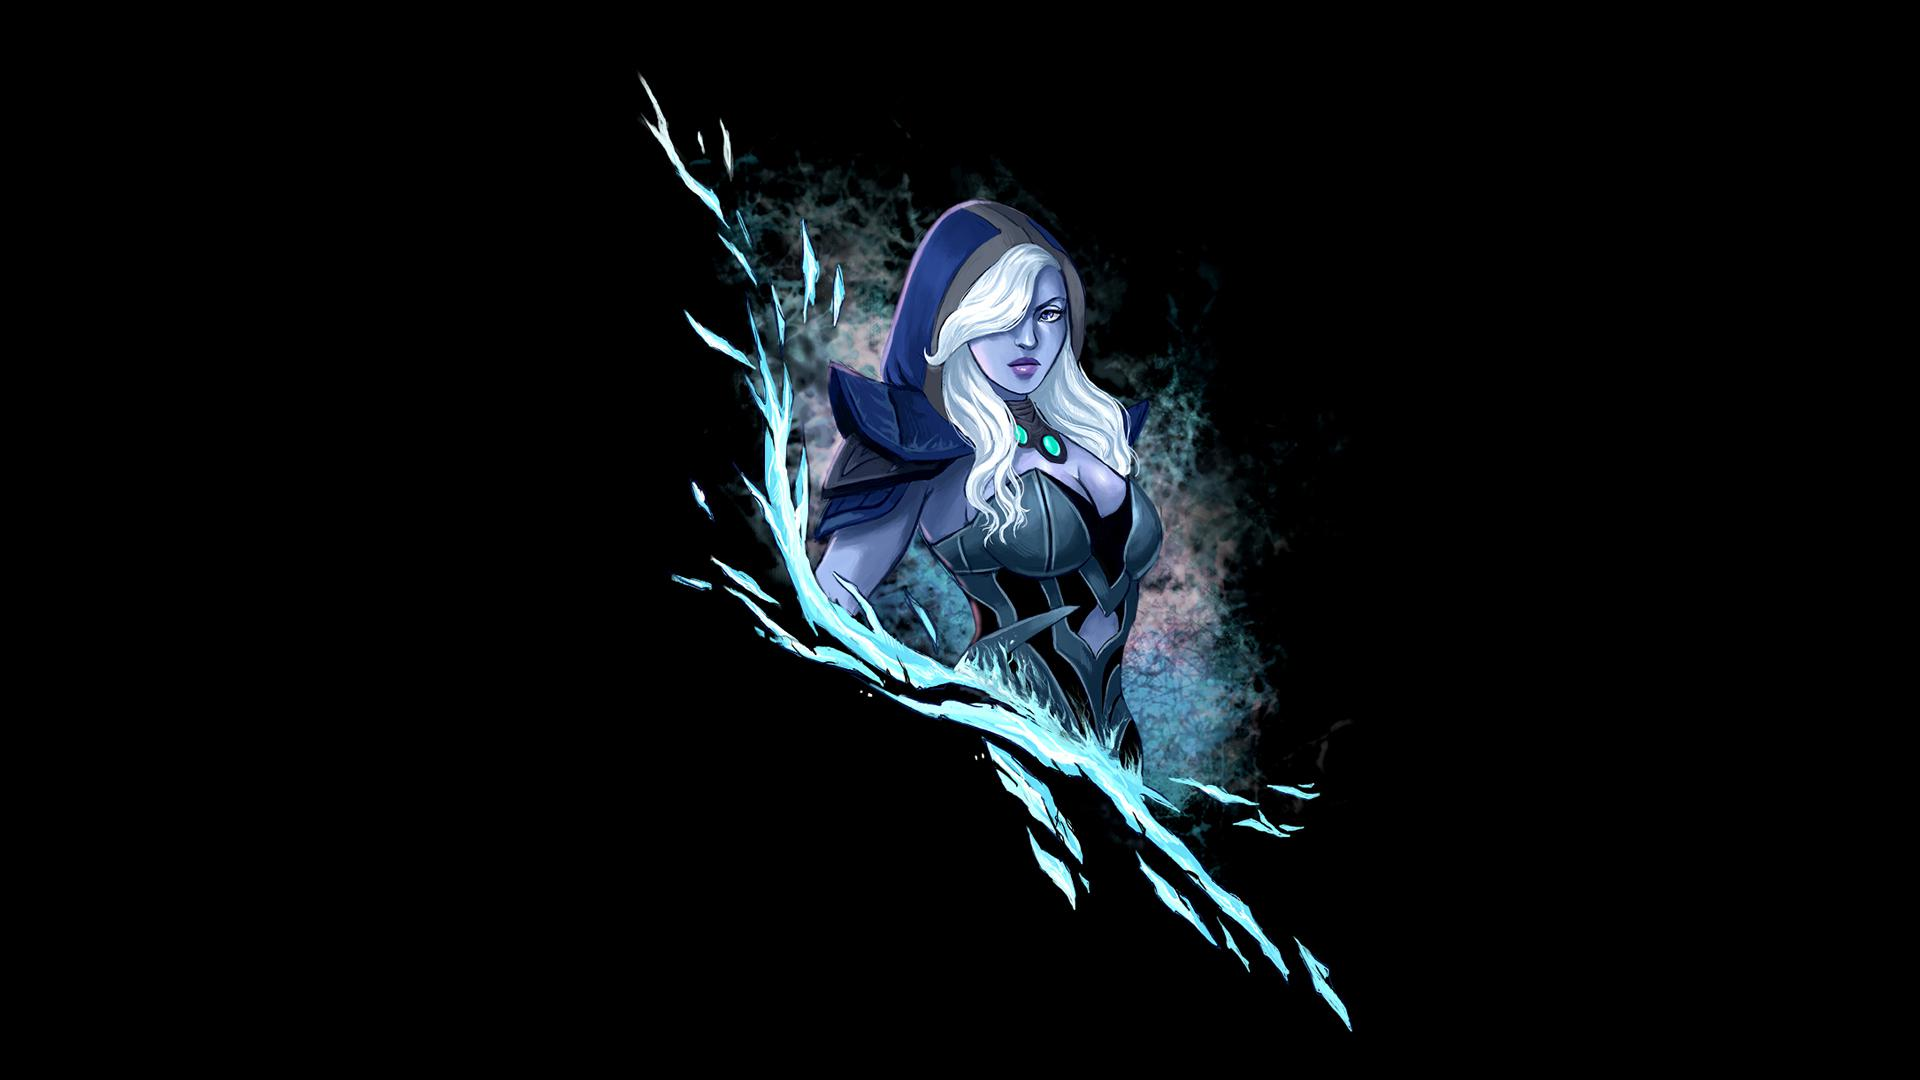 Best Dota Wallpaper drow ranger traxex girl dota